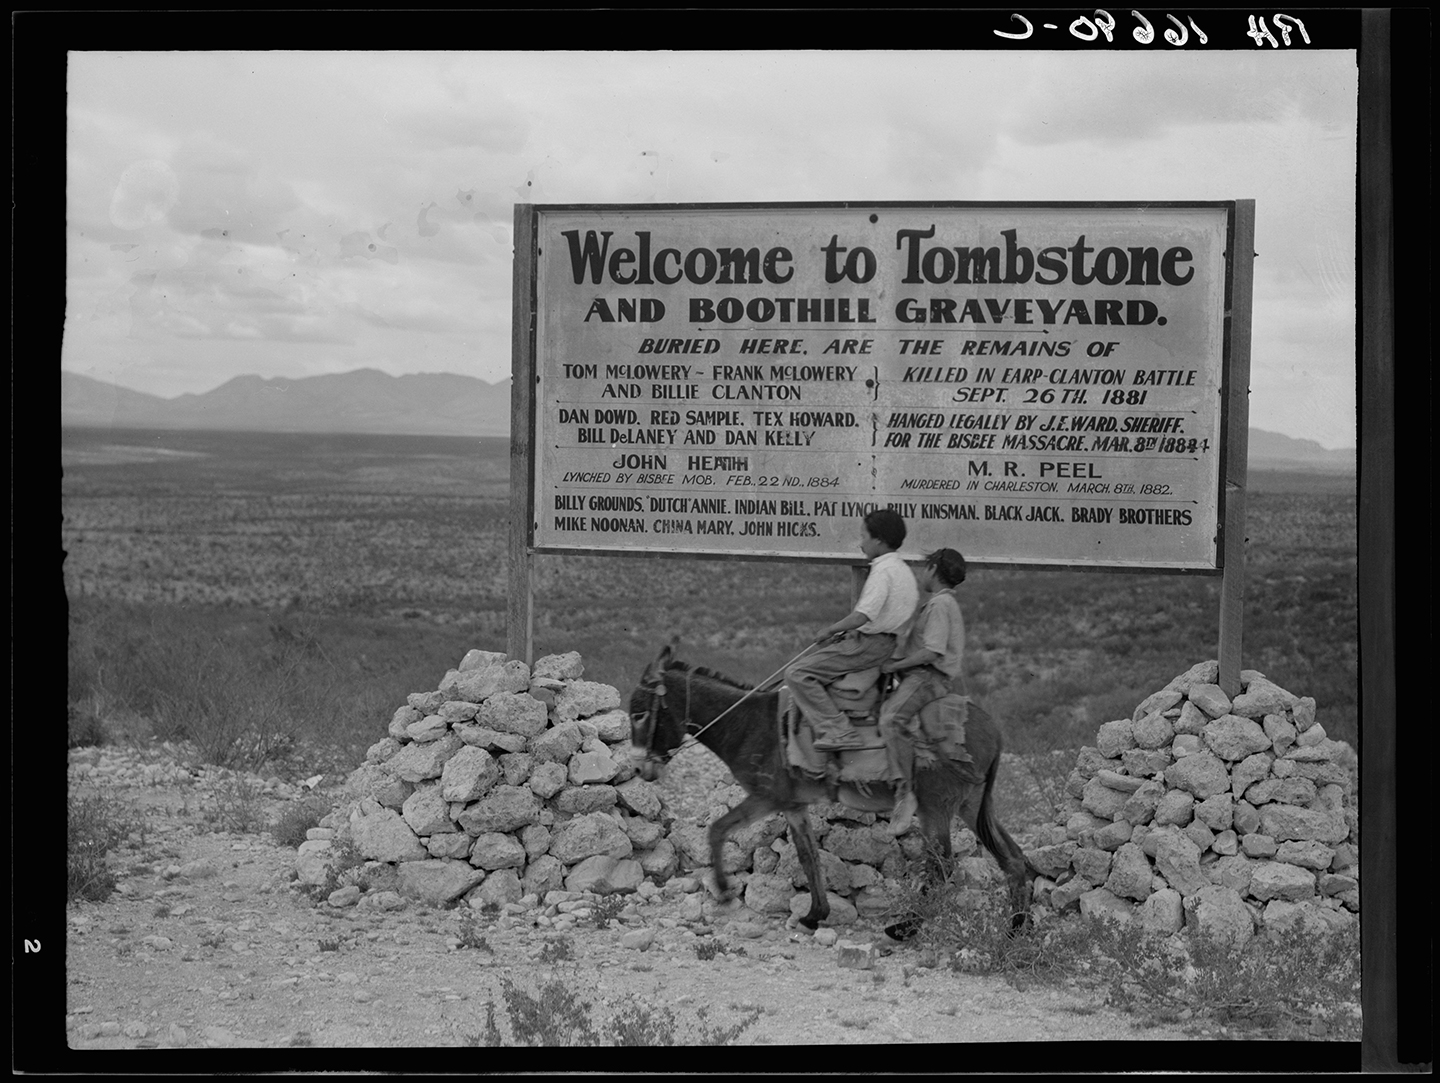 Welcome_to_Tombstone_BW_web.jpg